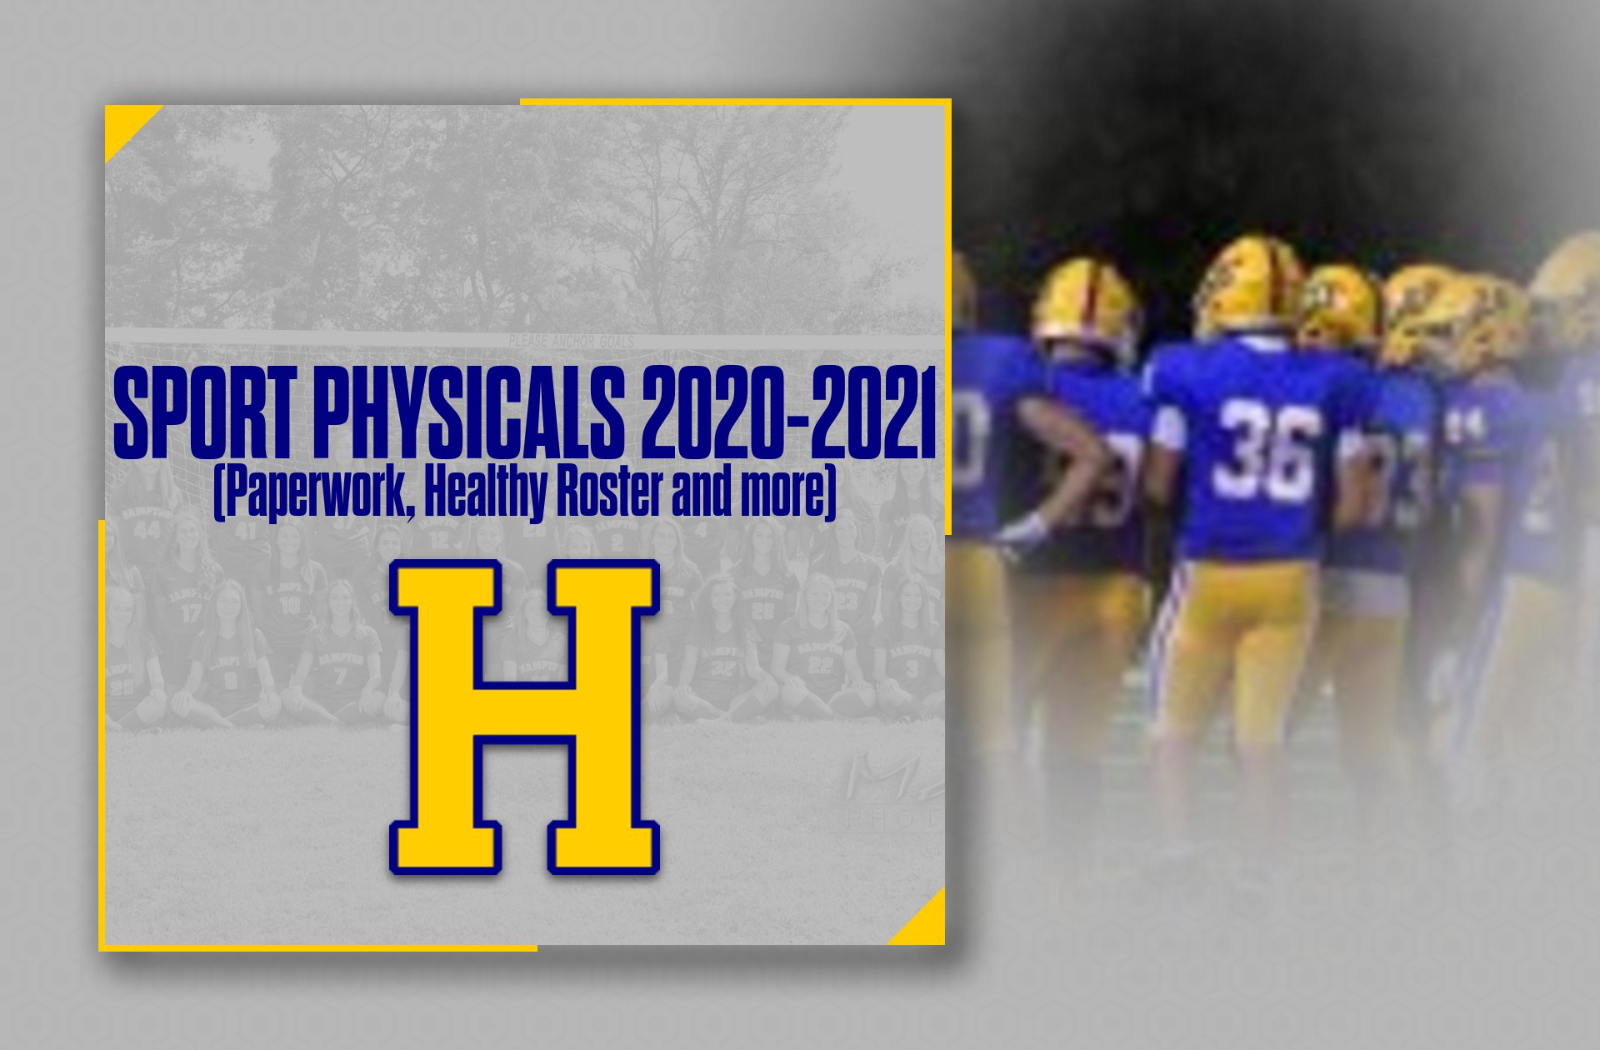 Sport Physicals / Healthy Roster